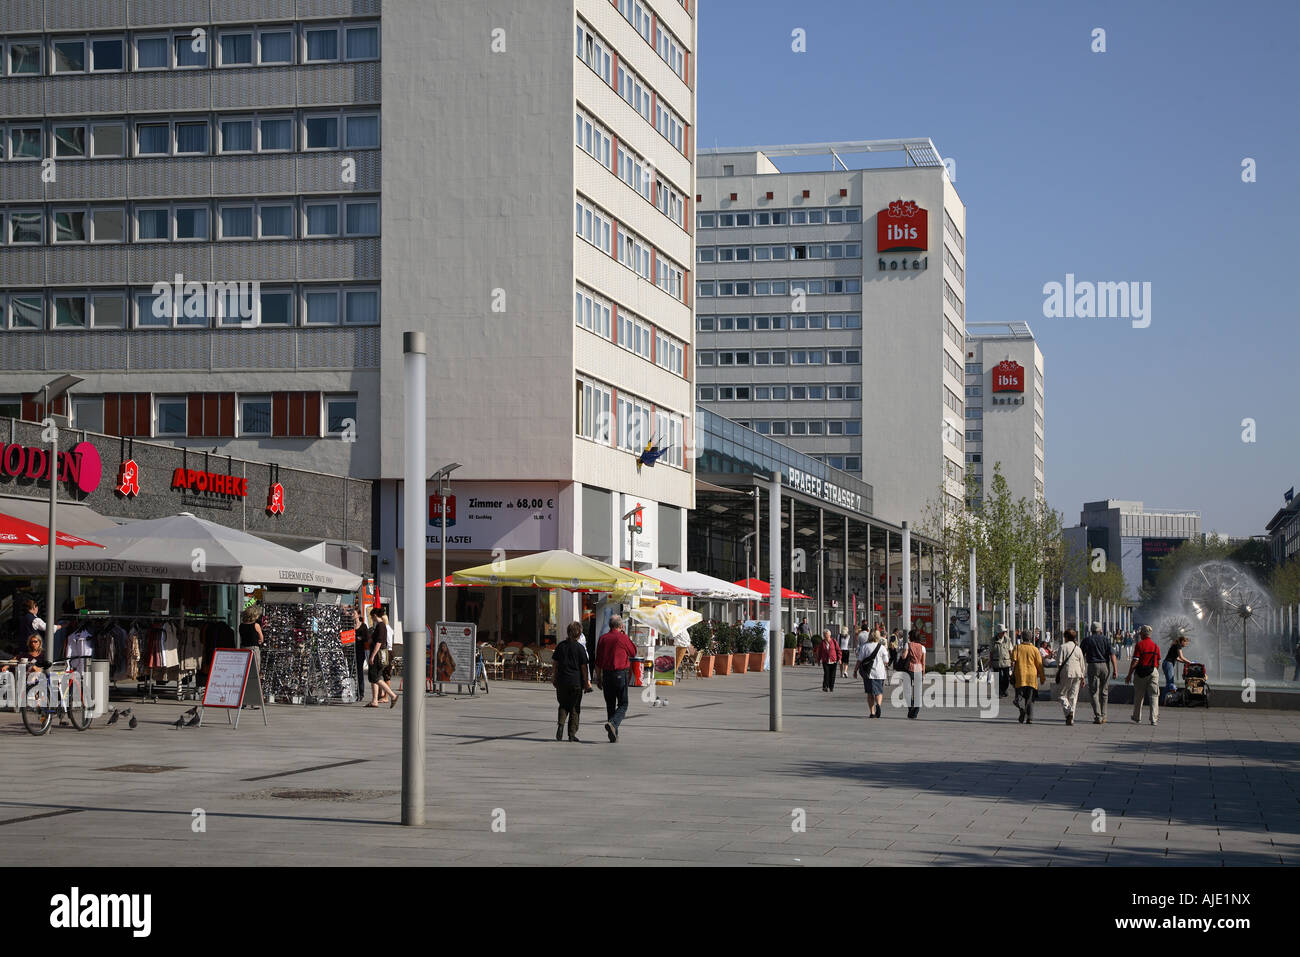 sachsen saxony dresden prager strasse street st stock photo royalty free image 14708437 alamy. Black Bedroom Furniture Sets. Home Design Ideas